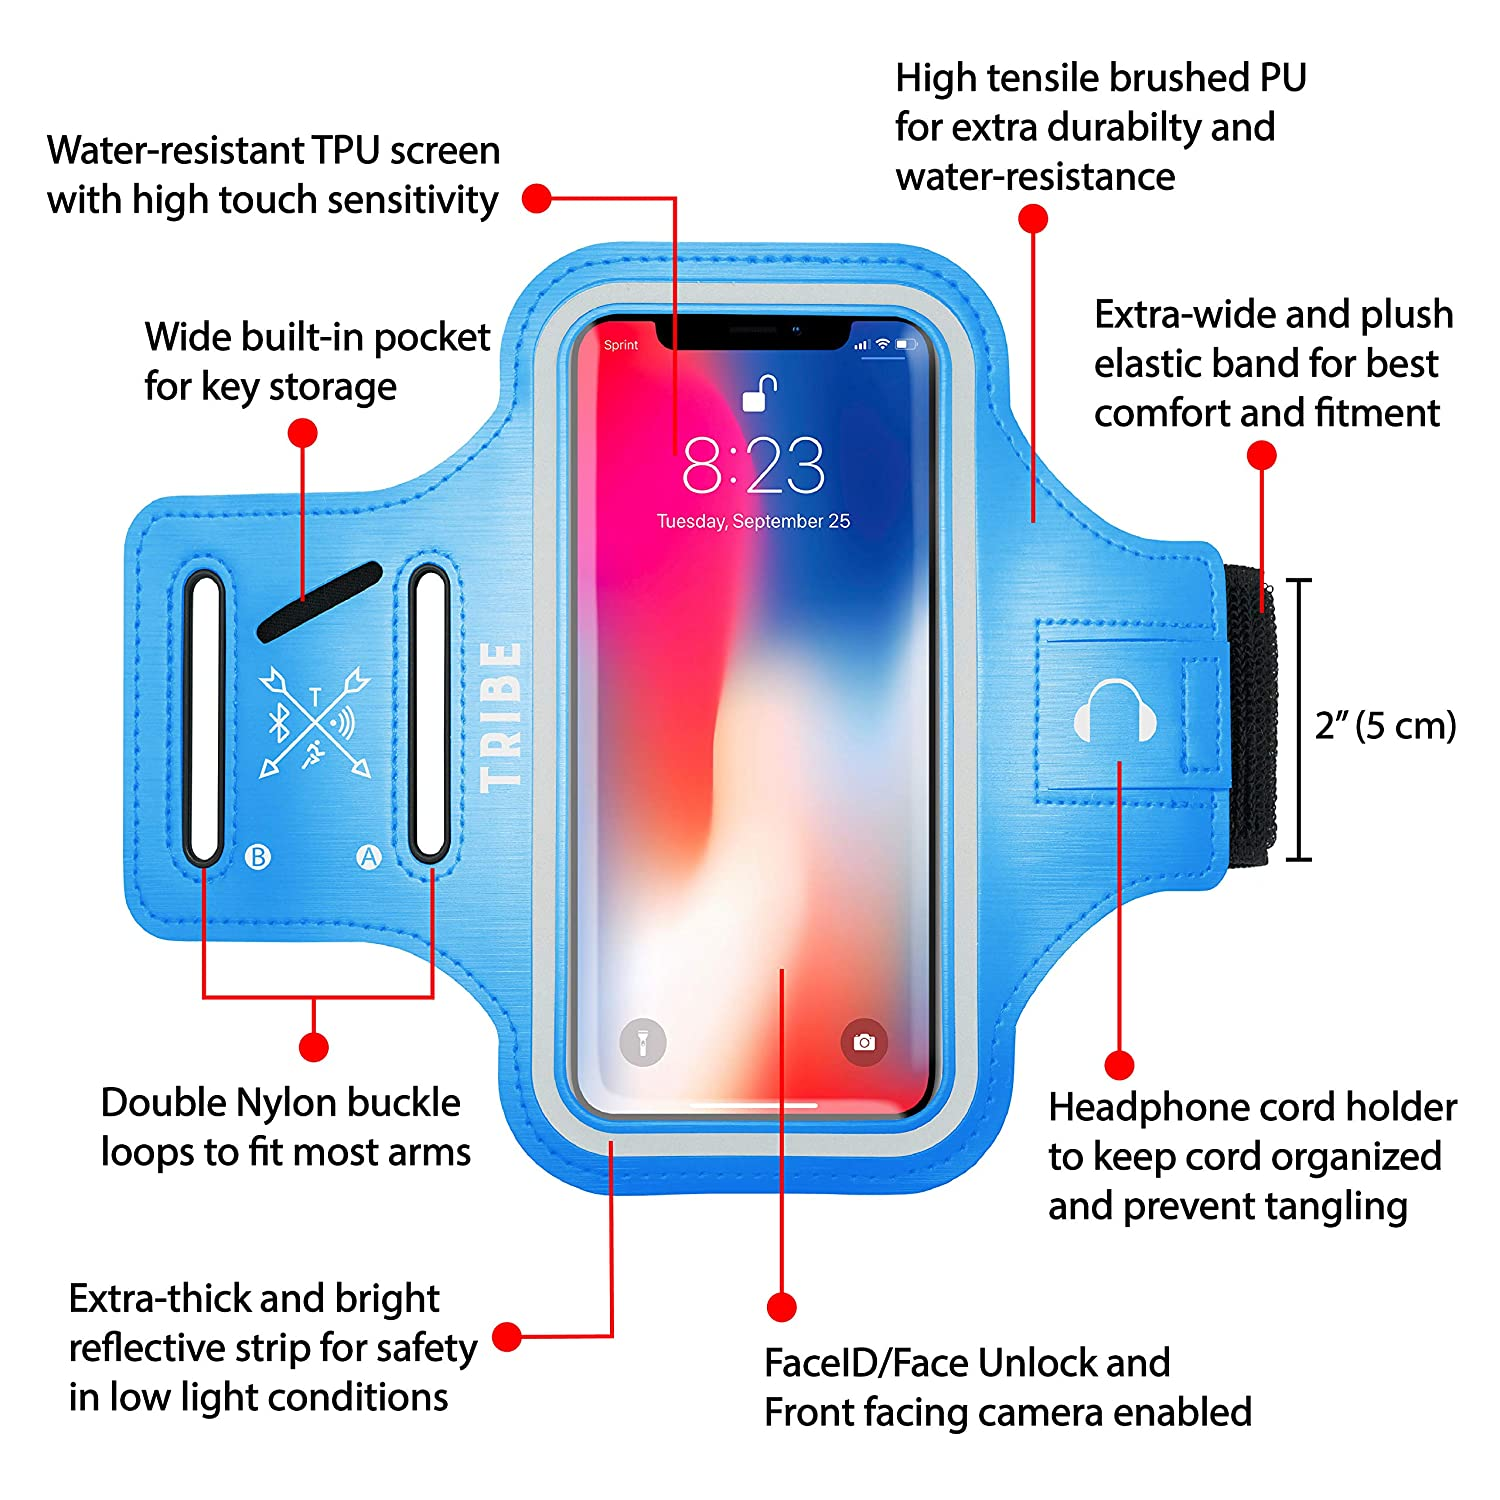 TRIBE Water Resistant Cell Phone Armband Case for iPhone X, Xs, 8, 7, 6, 6S  Samsung Galaxy S9, S8, S7, S6, A8 with Adjustable Elastic Band & Key